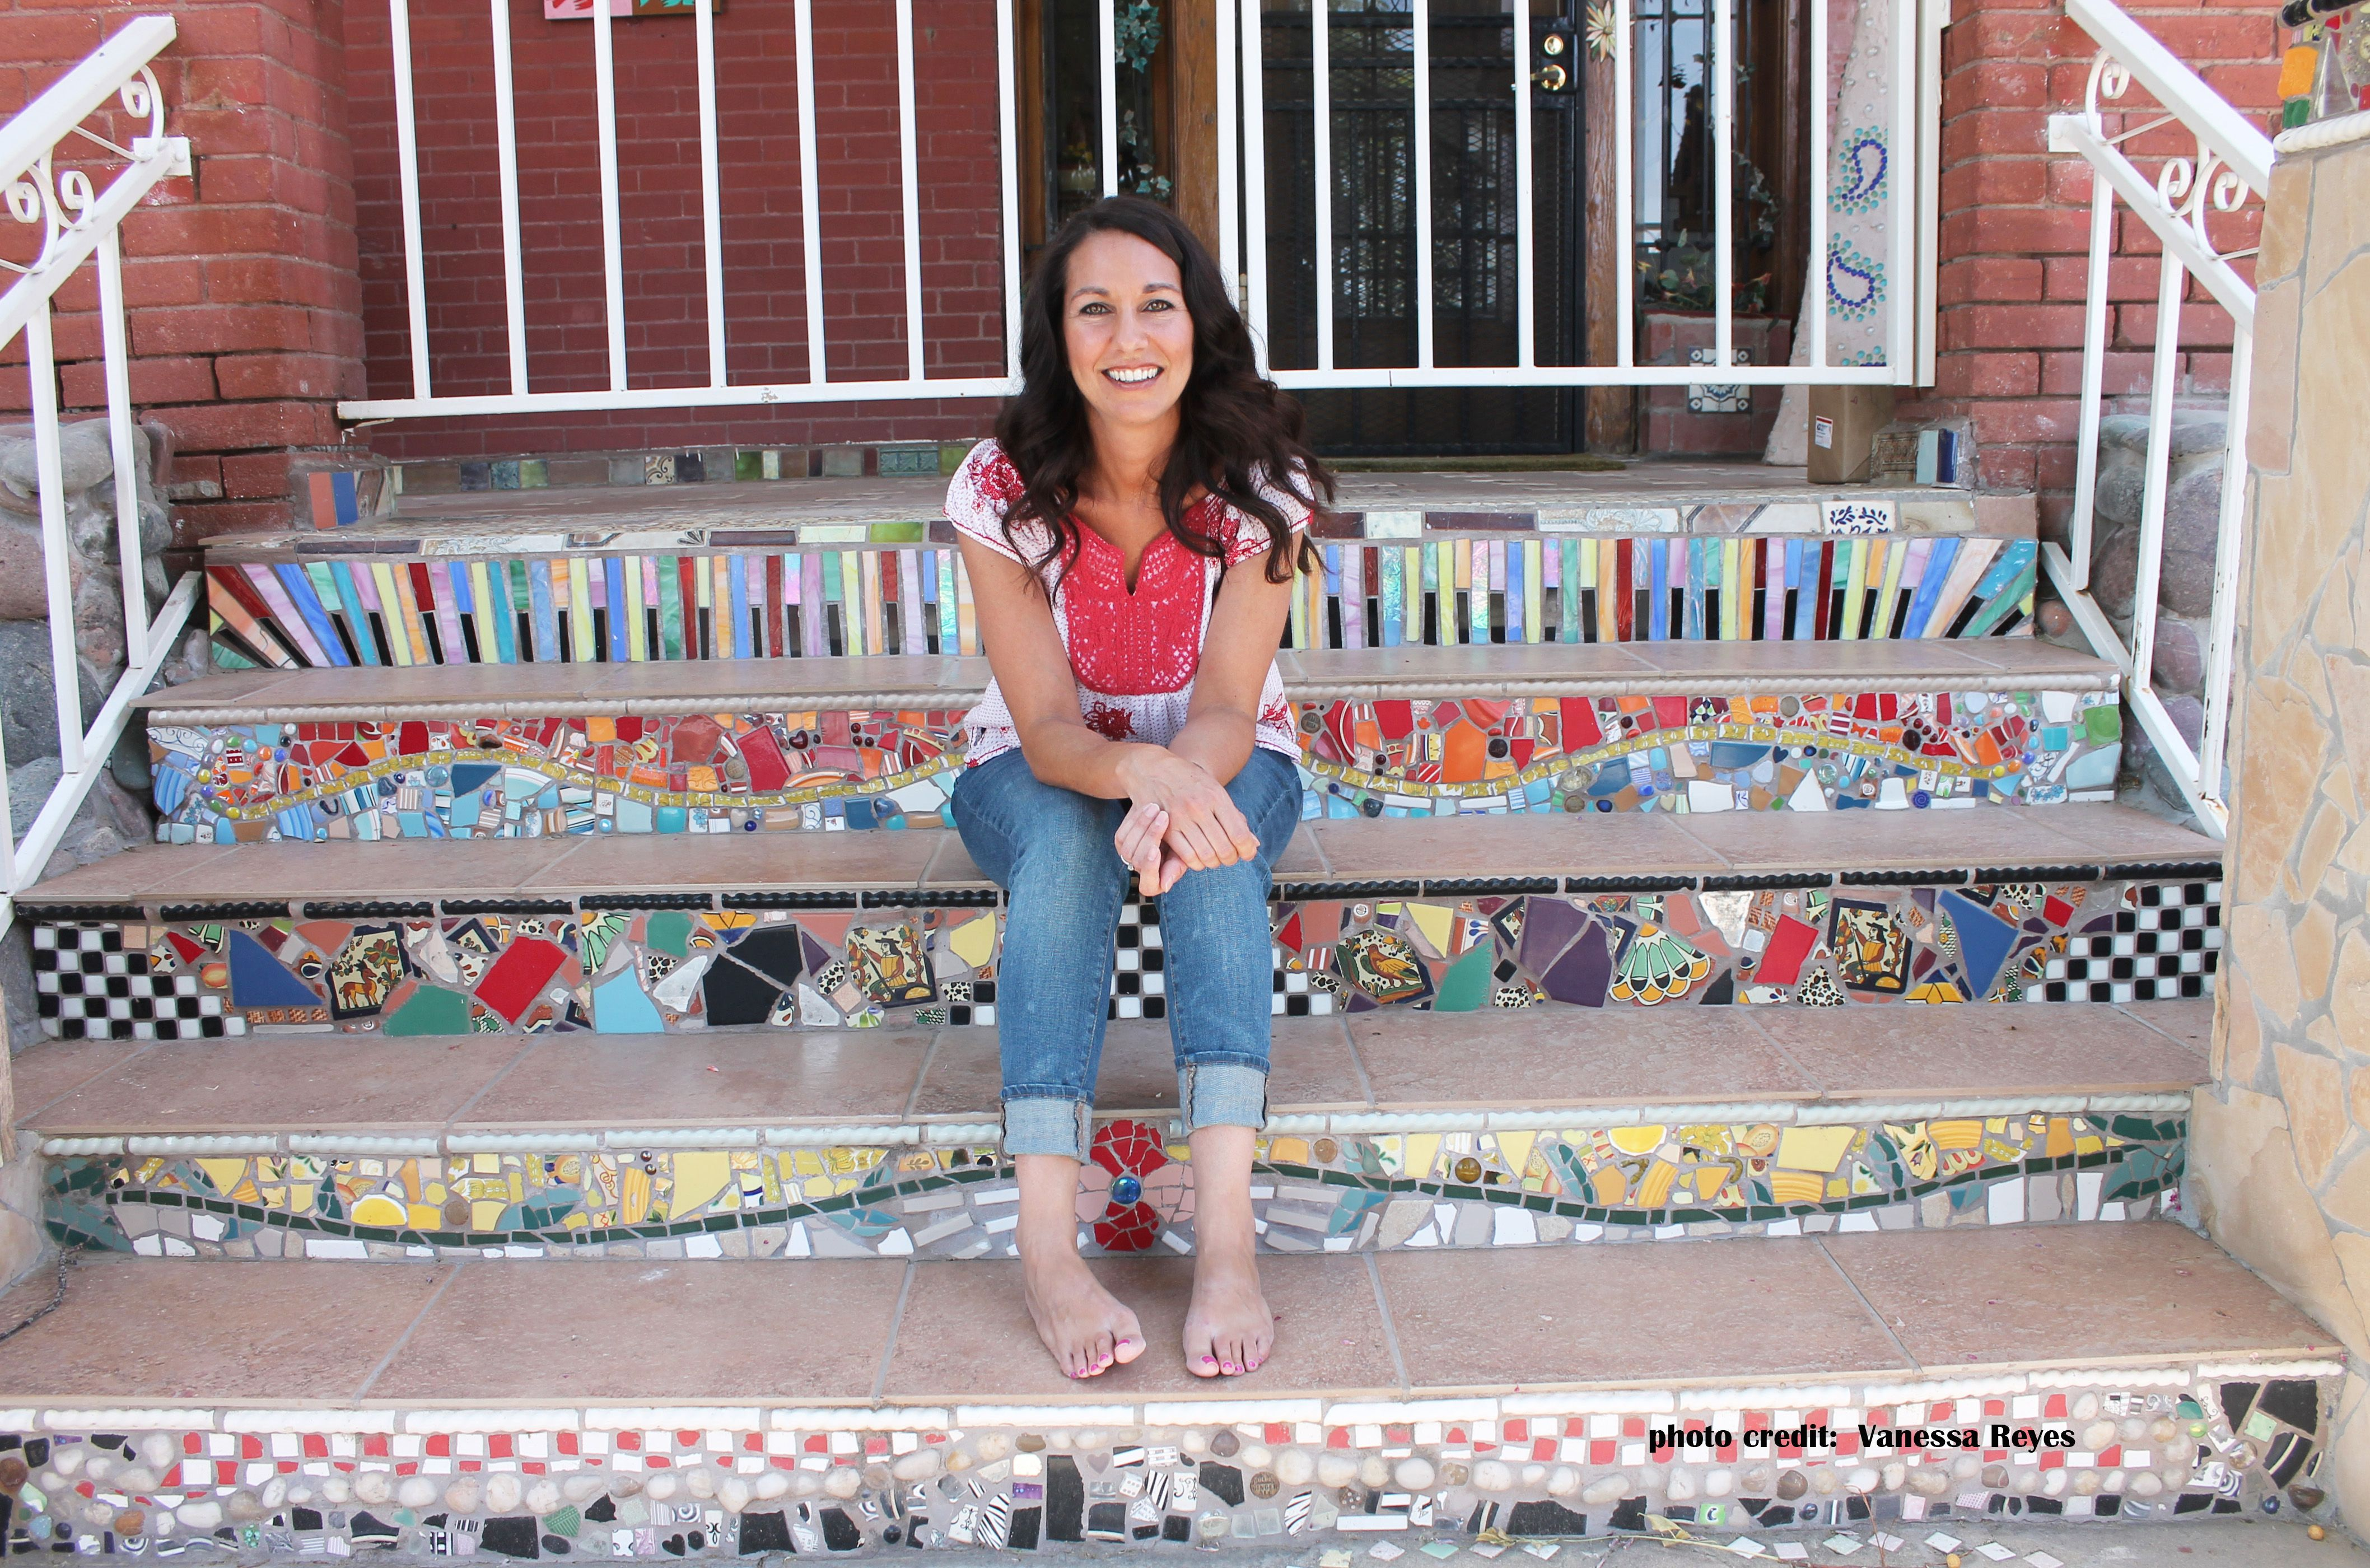 Let's be candid. | Mosaic Stairs | Mosaic tile art, Mosaic ...